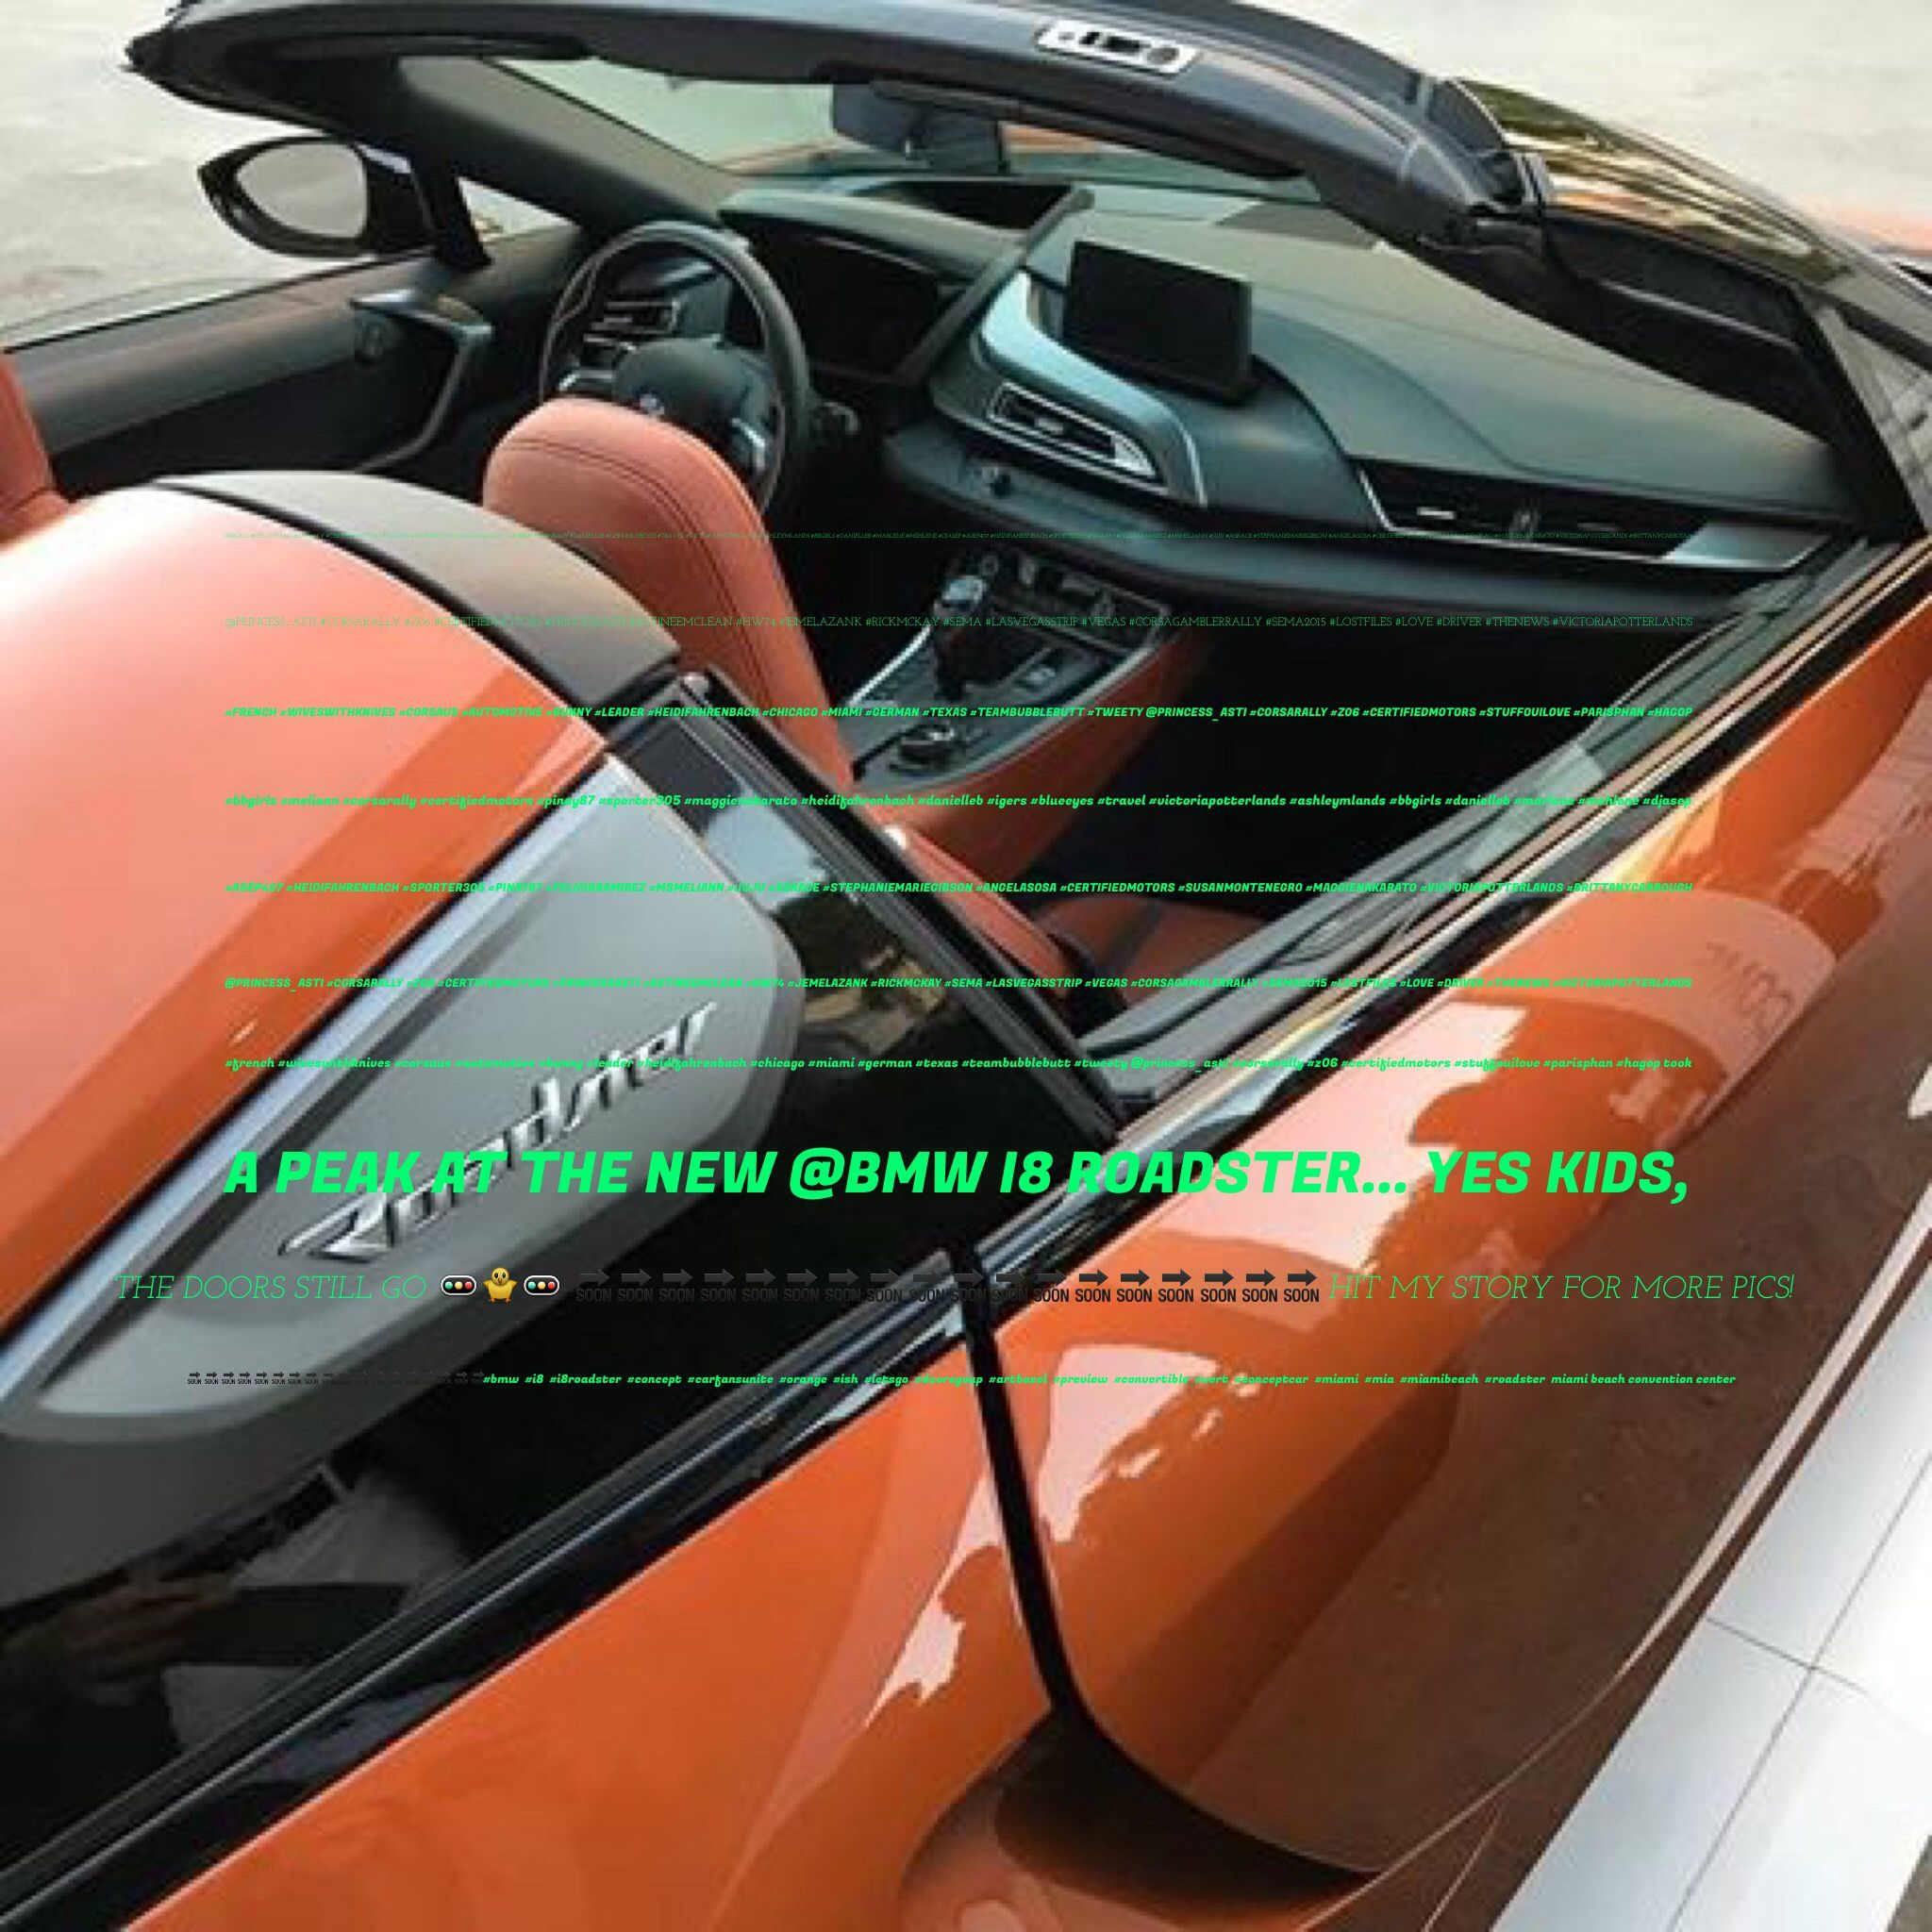 Took A Peak At The New Bmw I8 Roadster Yes Kids The Doors Still